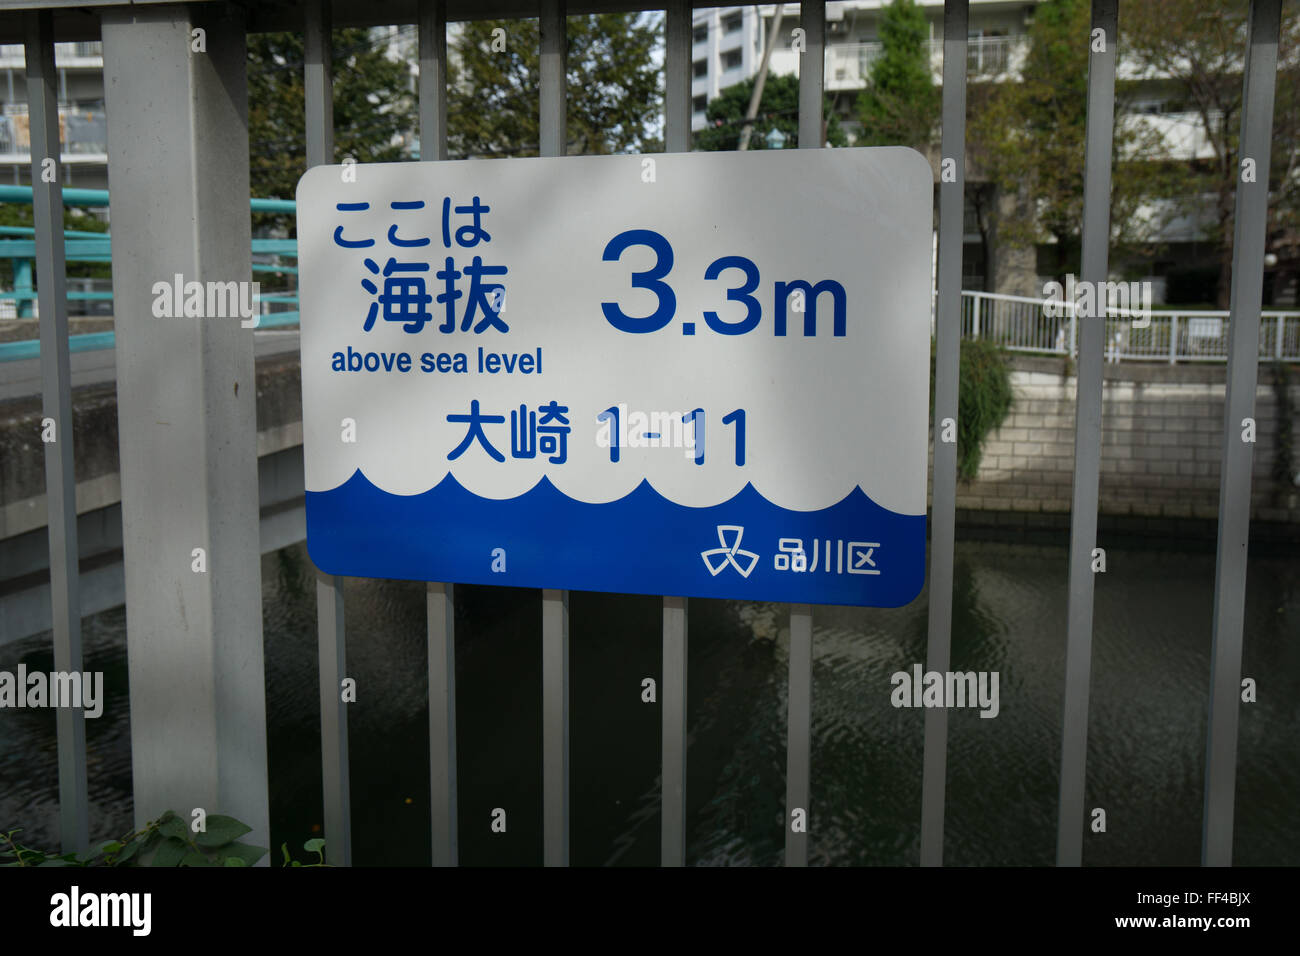 tsunami warning sign with current elevation - Stock Image